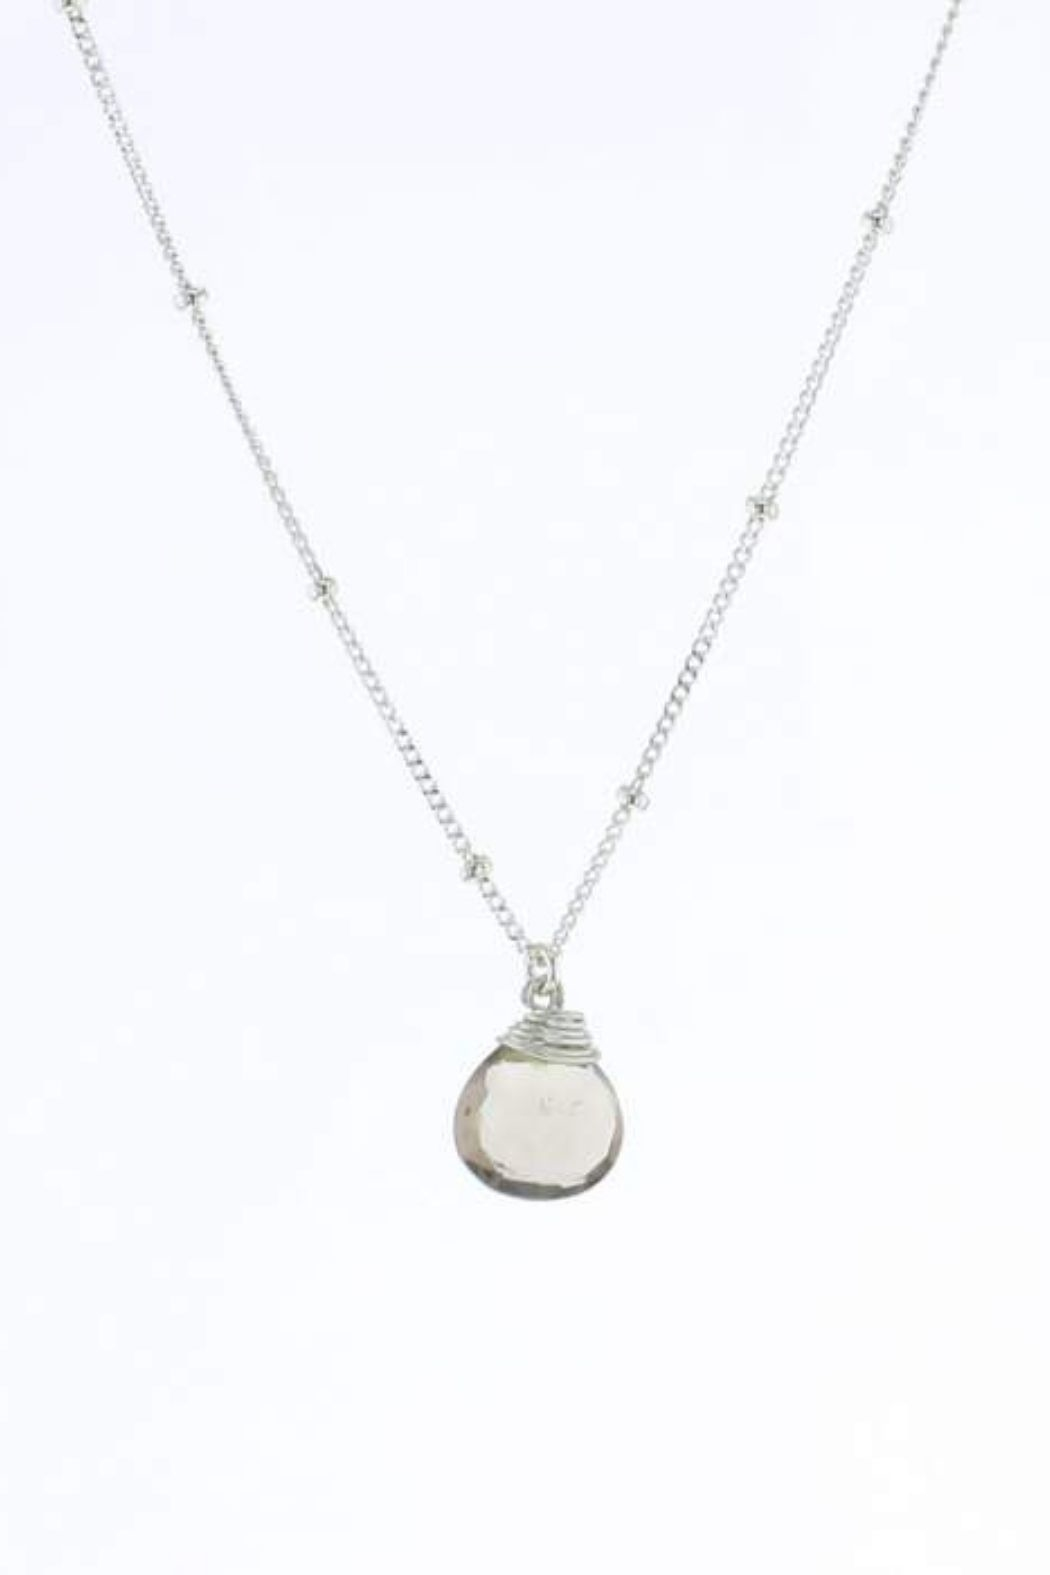 Lotus Jewelry Studio Silver Stone Trinket Necklace -16